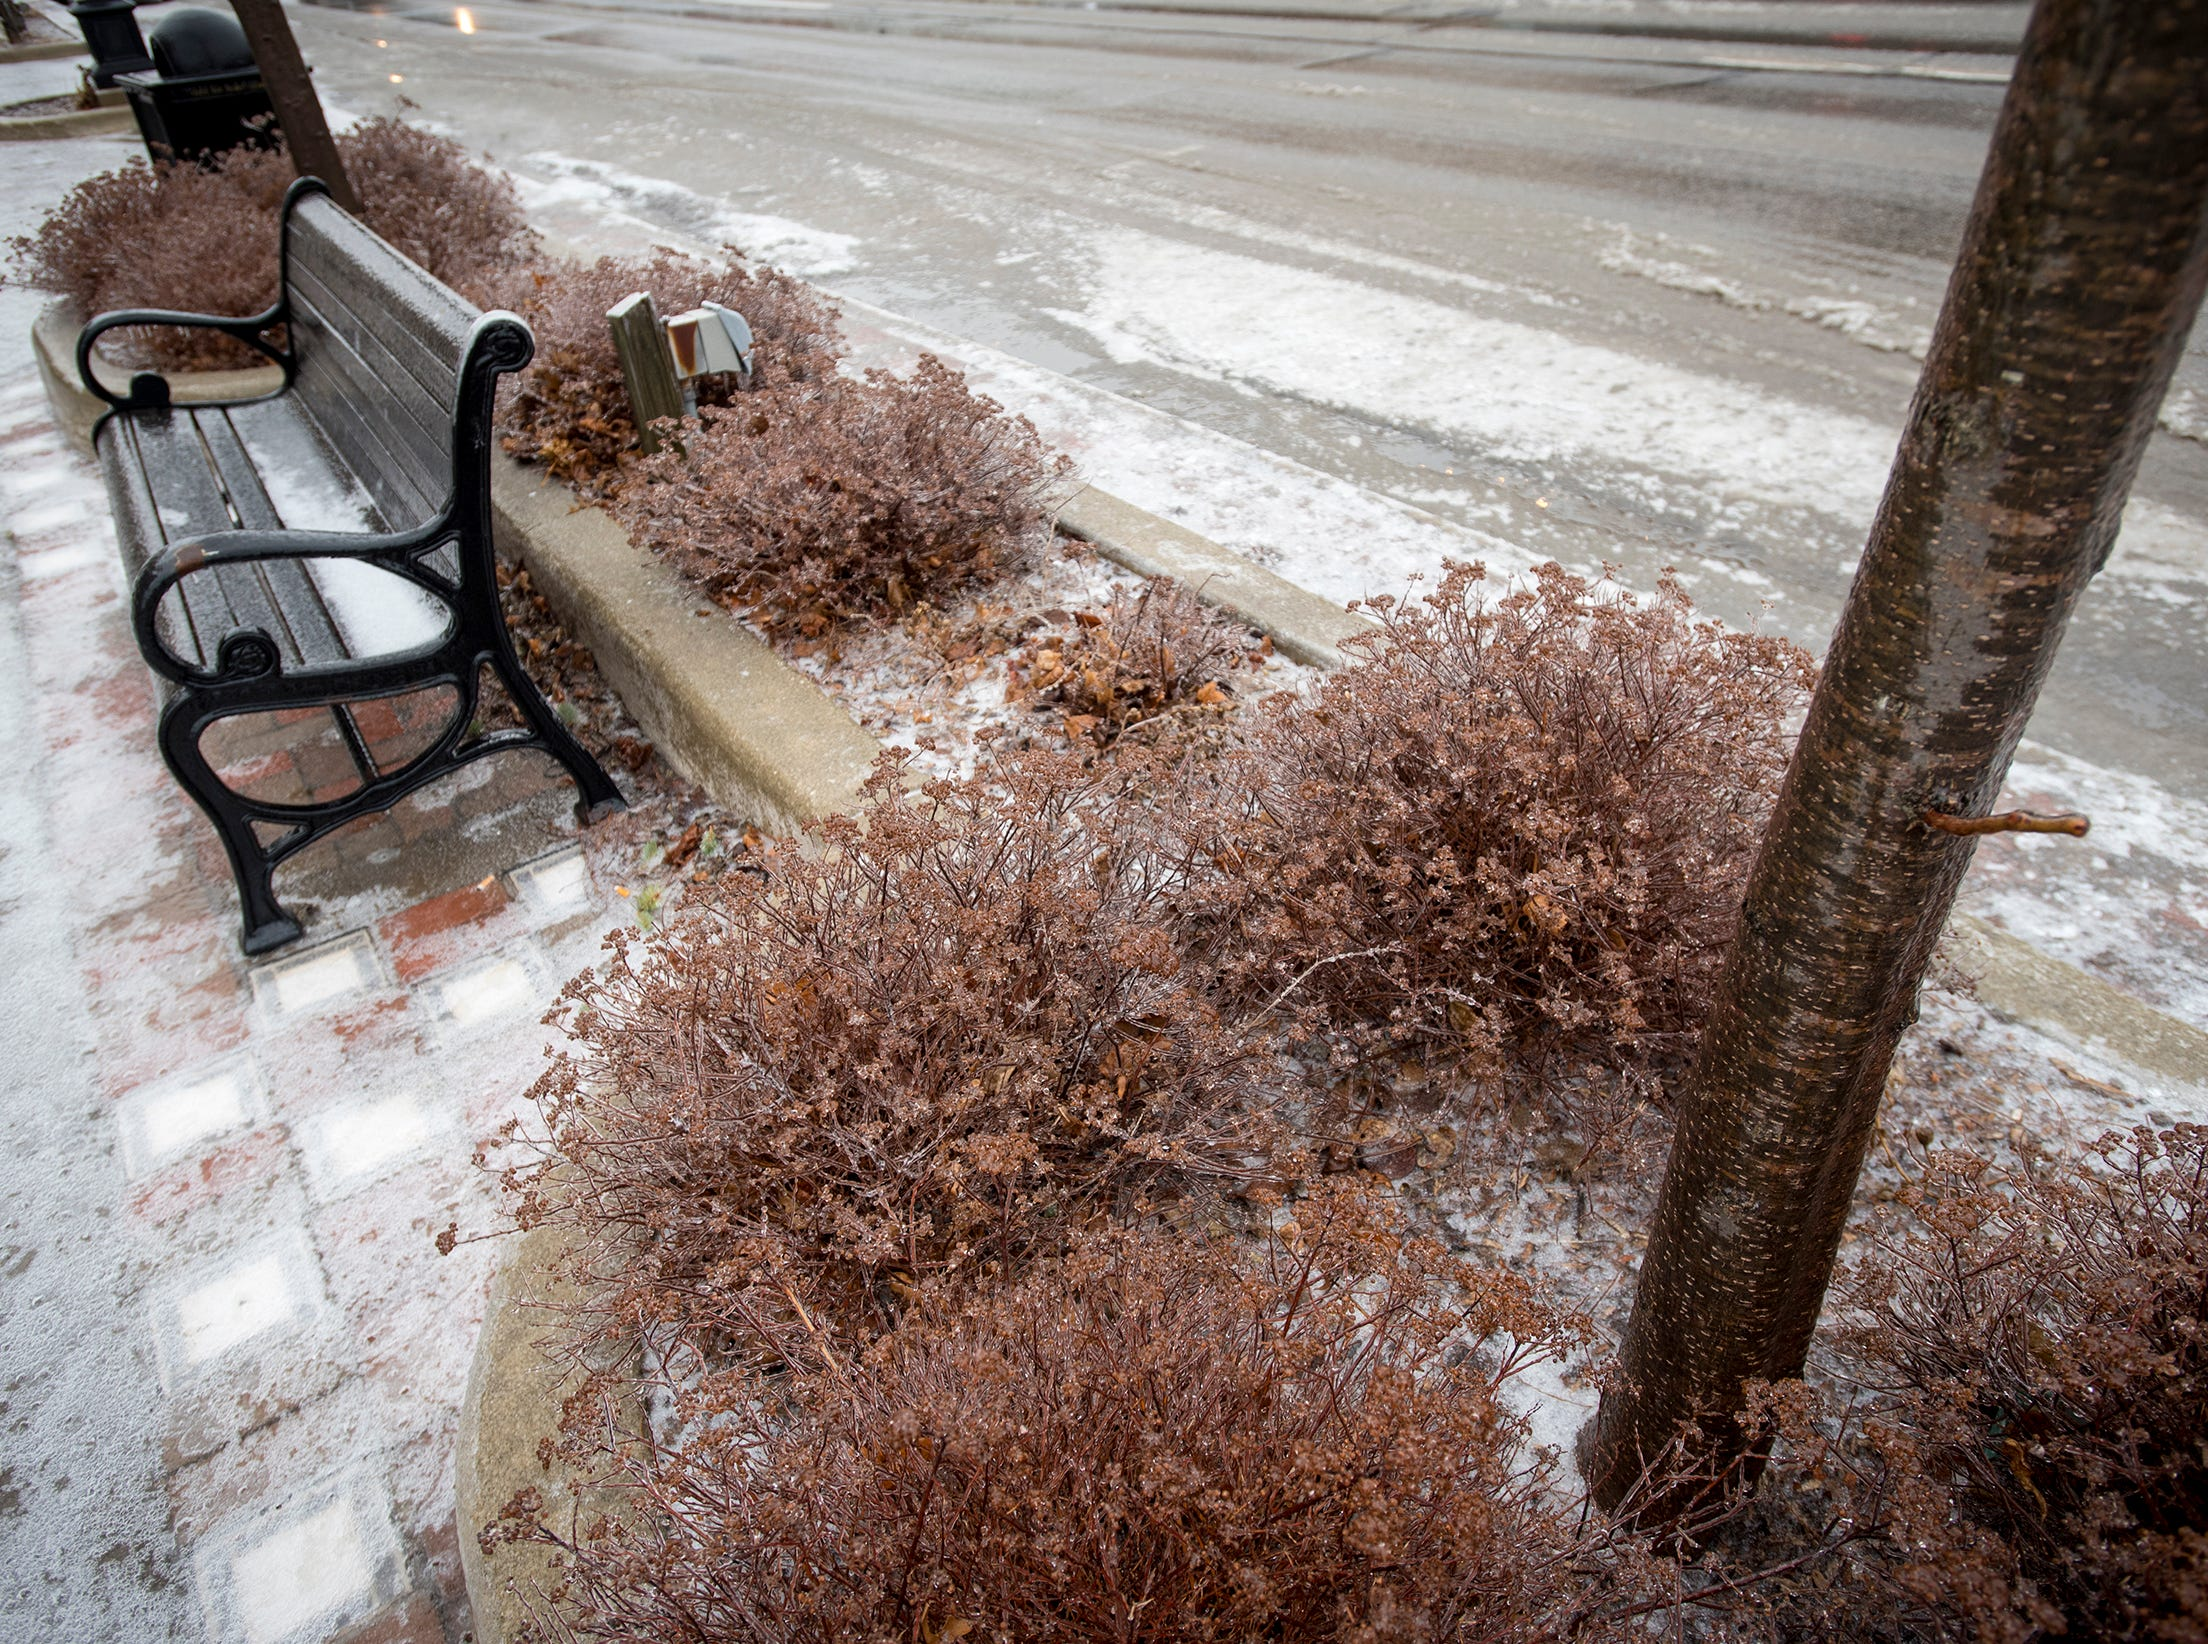 A thin layer of ice coats a bench and some bushes along Military Street in downtown Port Huron Wednesday, Feb. 6, 2019.